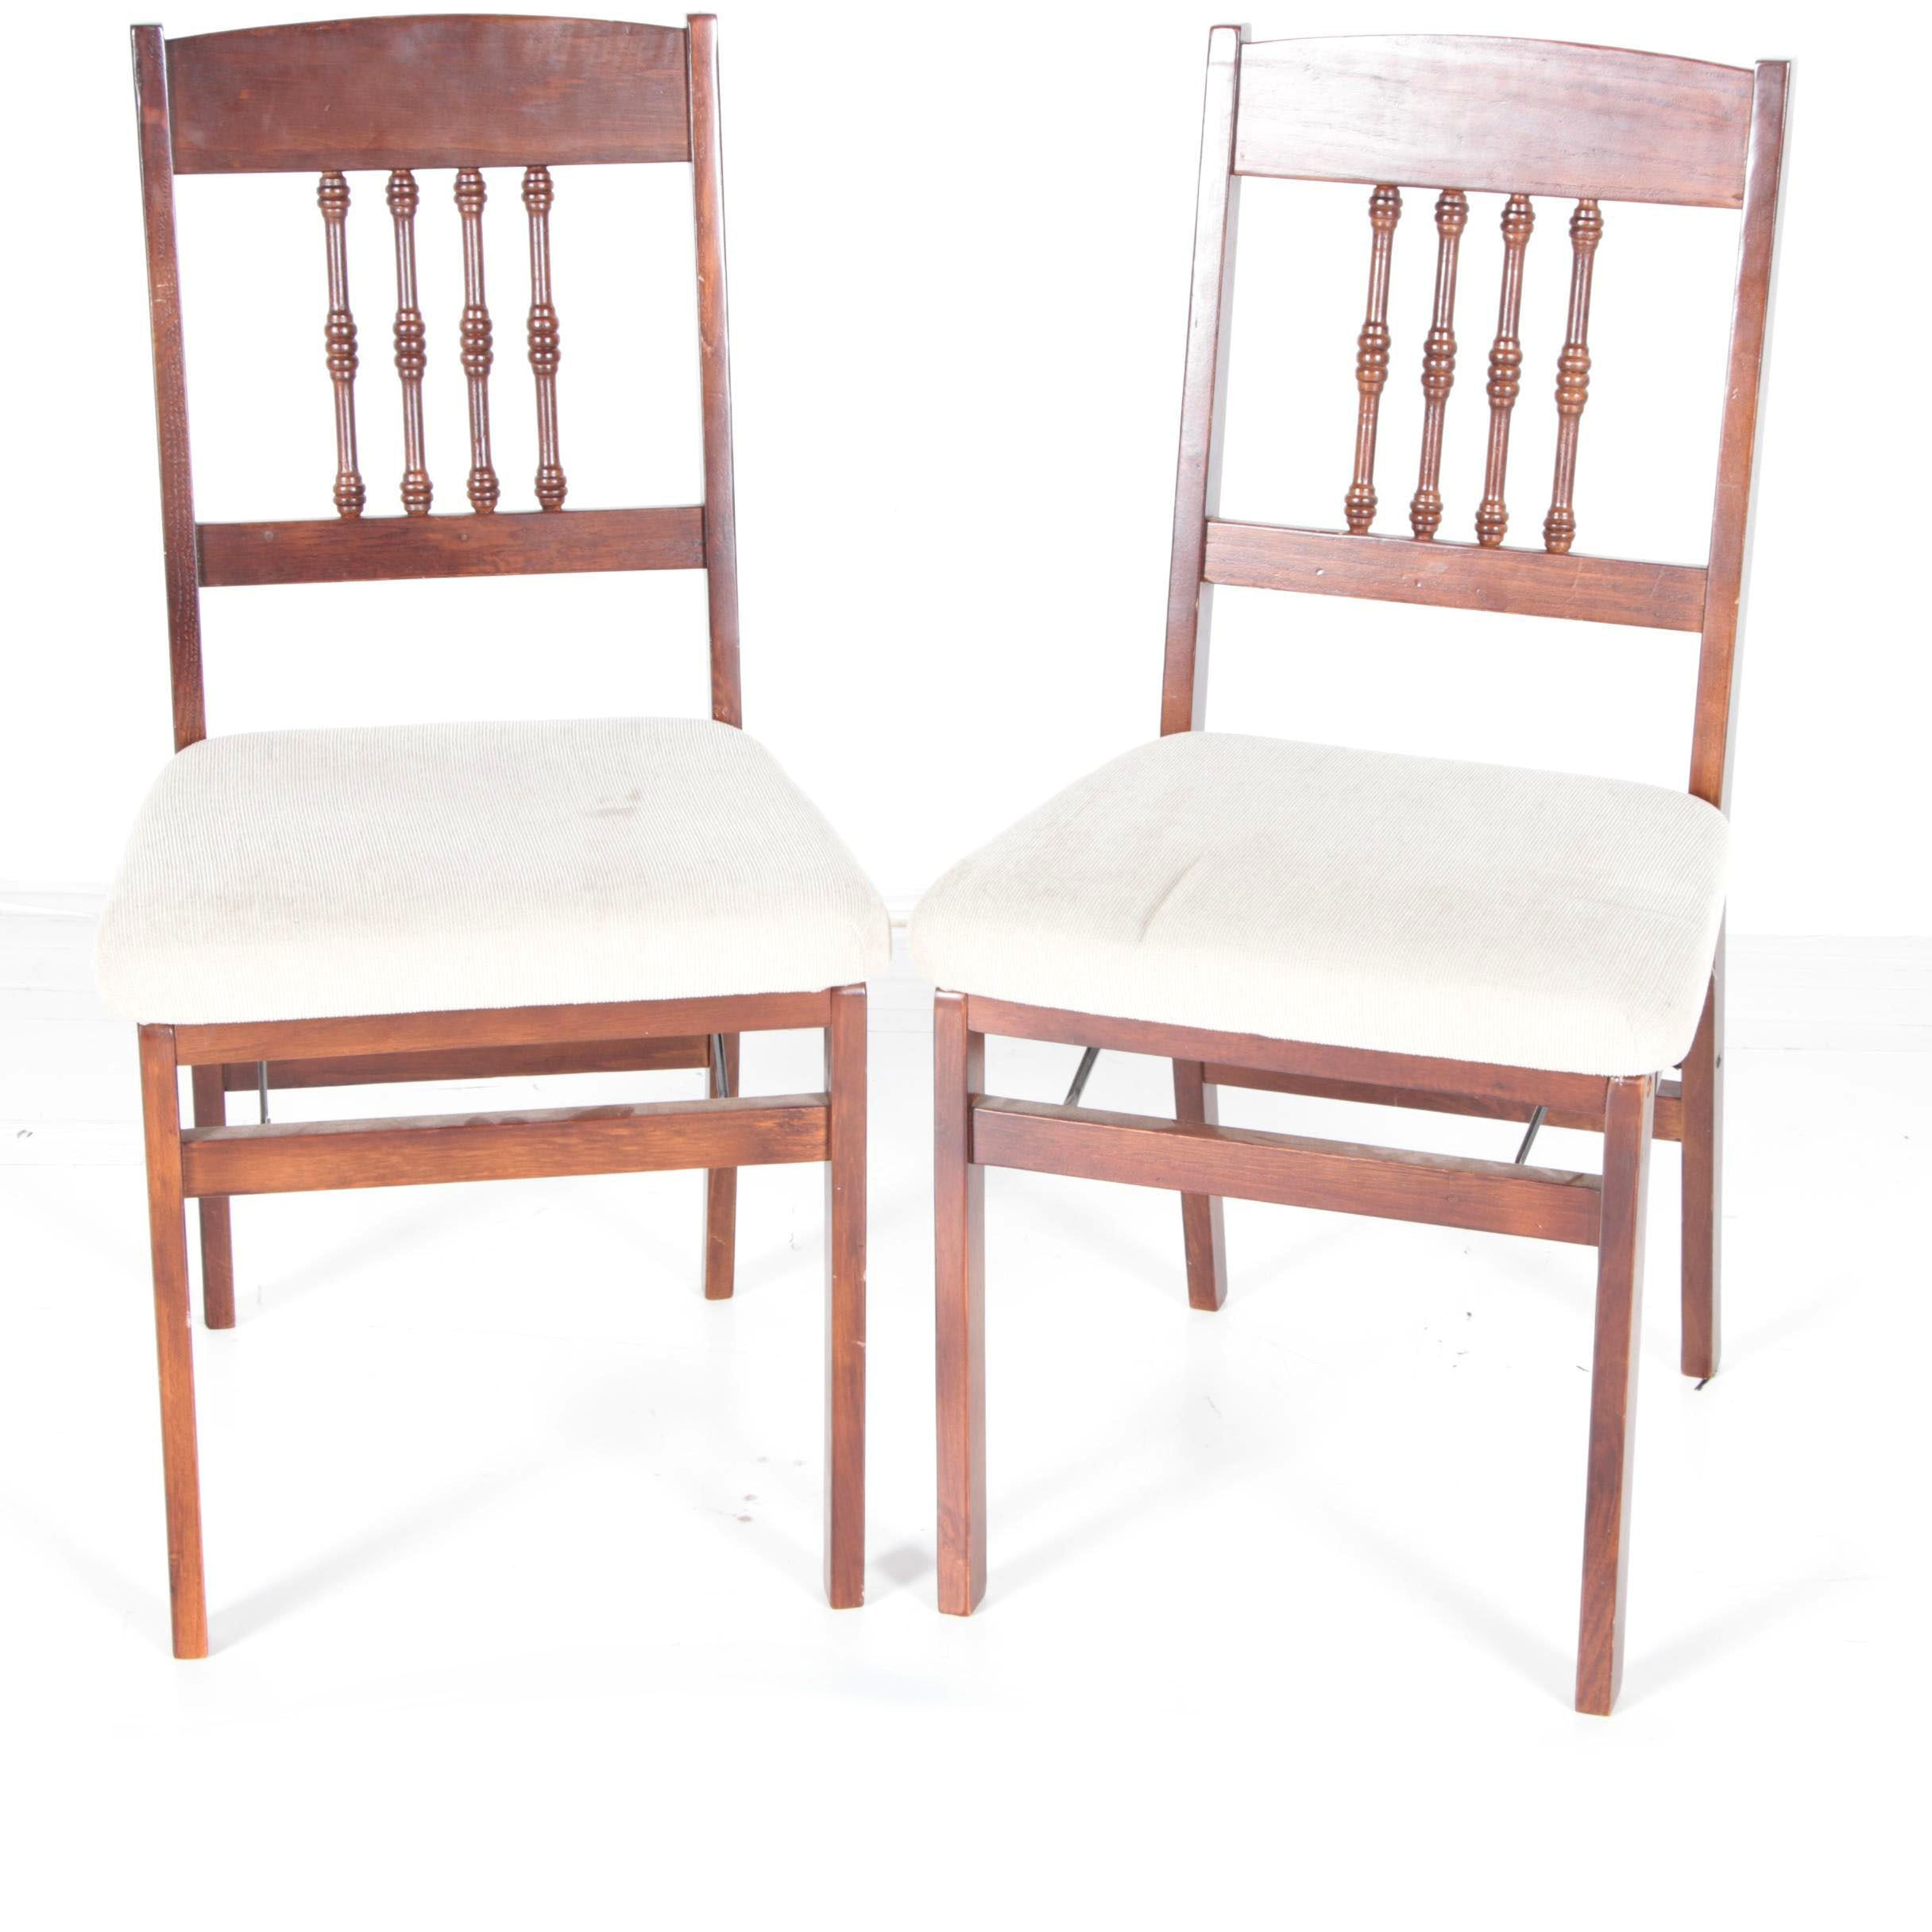 Wooden Frame Folding Chairs